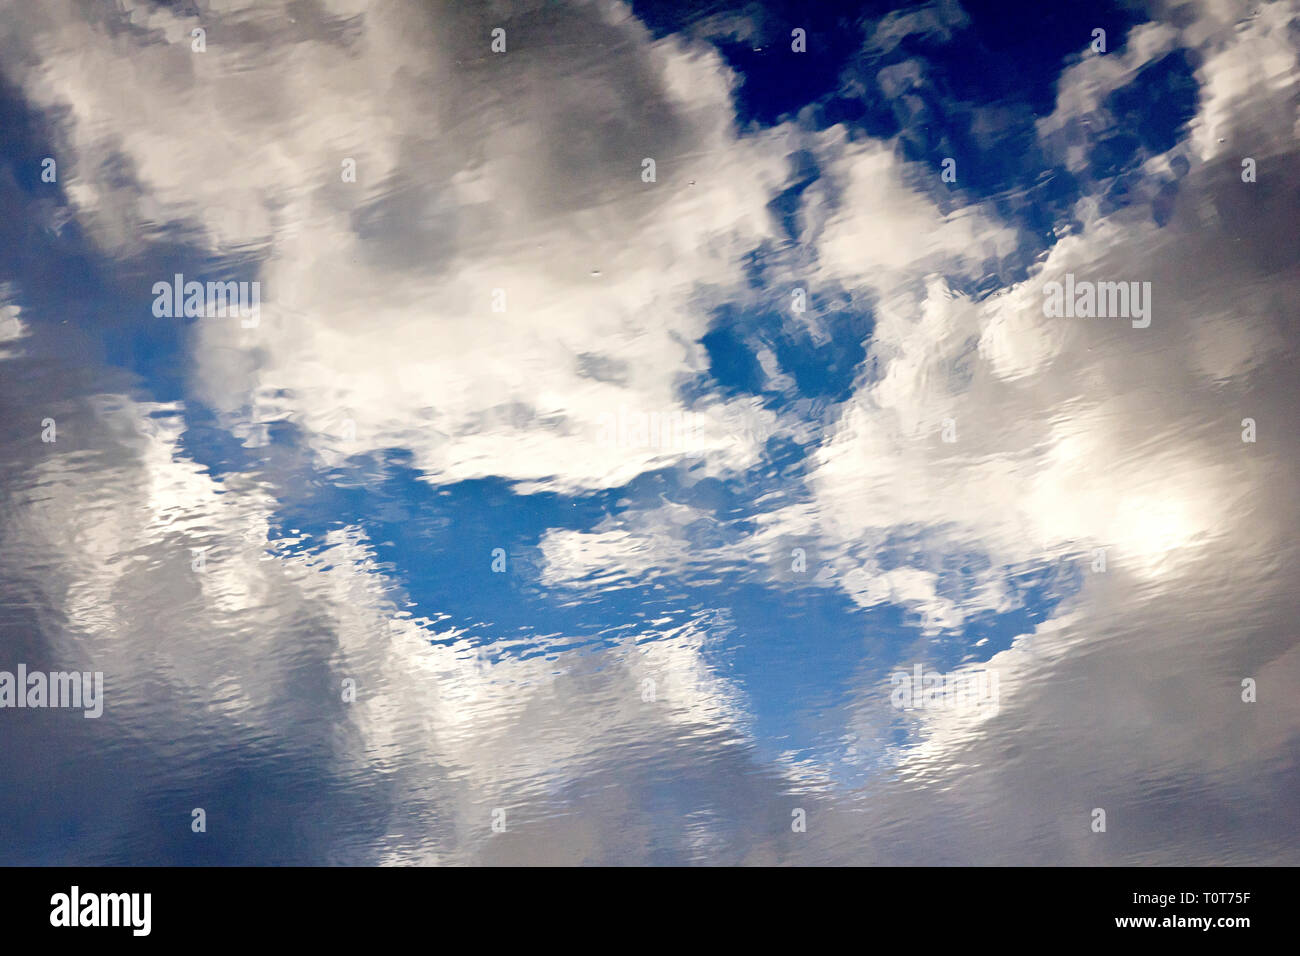 Rain clouds (cumulo nimbus) reflected and distorted in a puddle, so in effect an abstract image of water. - Stock Image